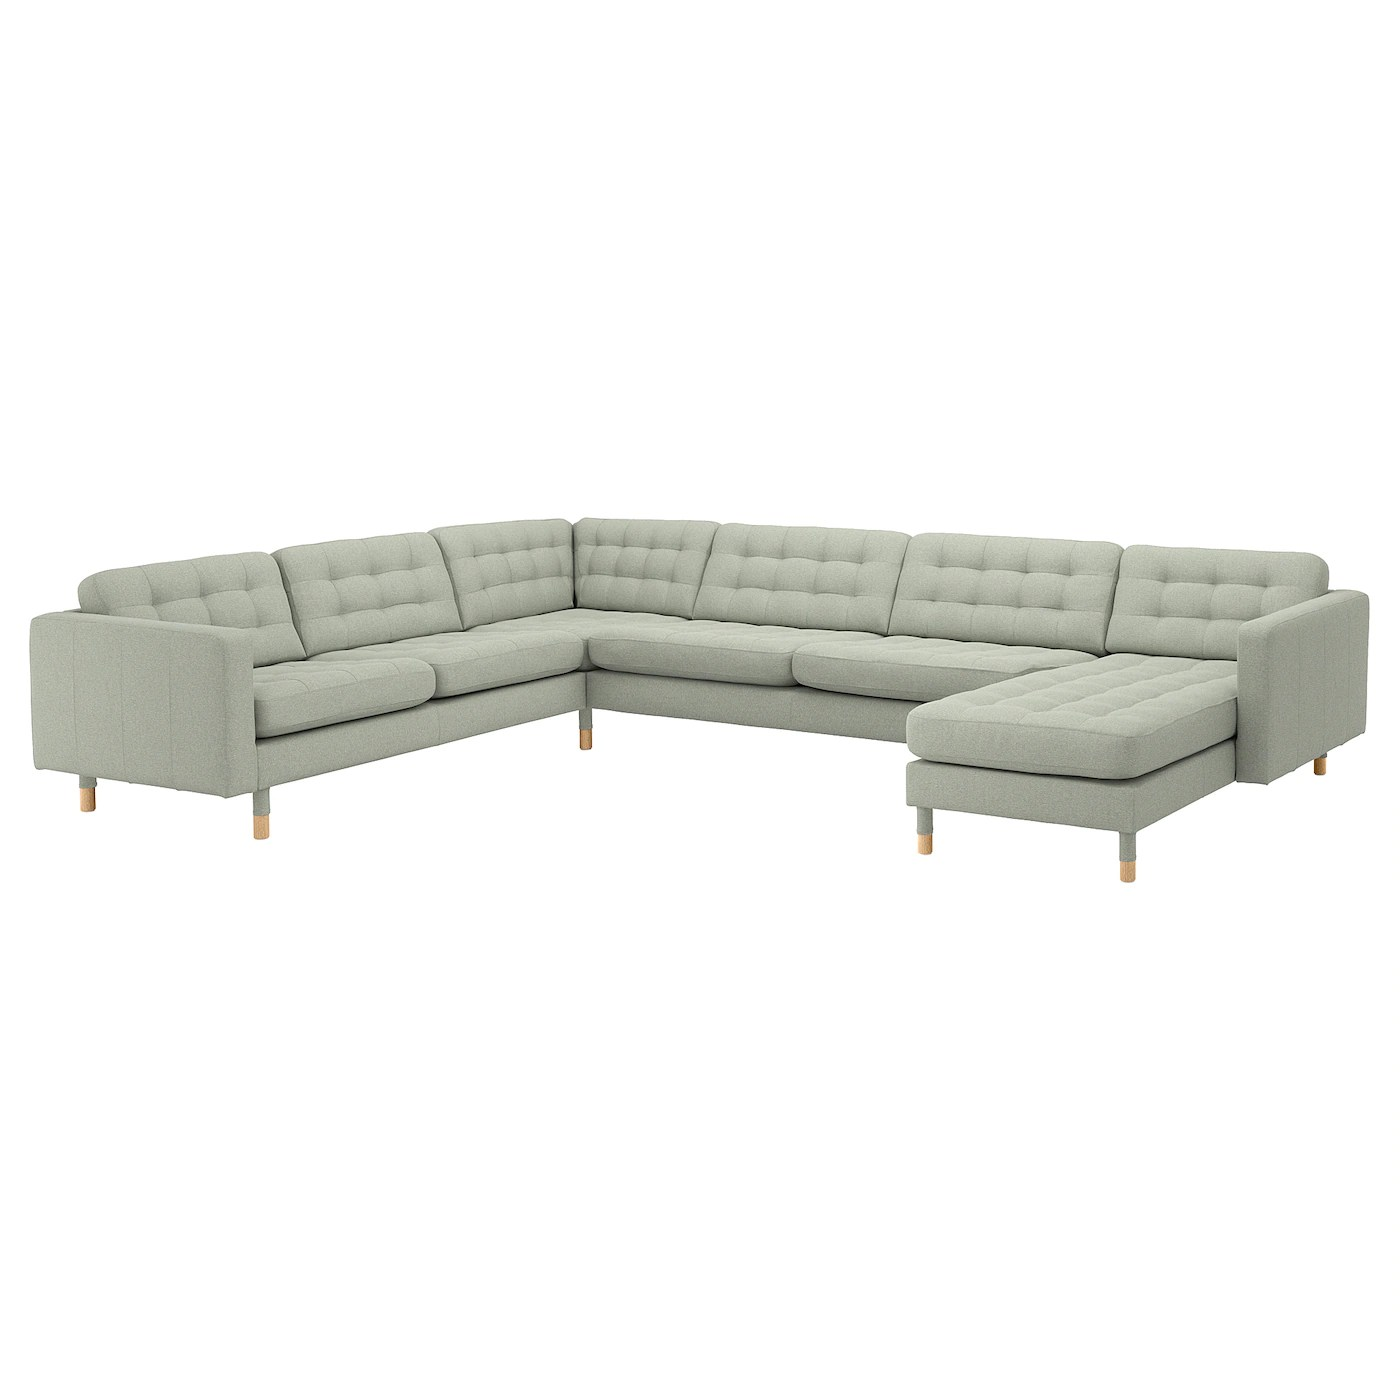 Eckcouch Beige Free Try Out Of Hudson 3seater From Ada In 3d Vr And Ar